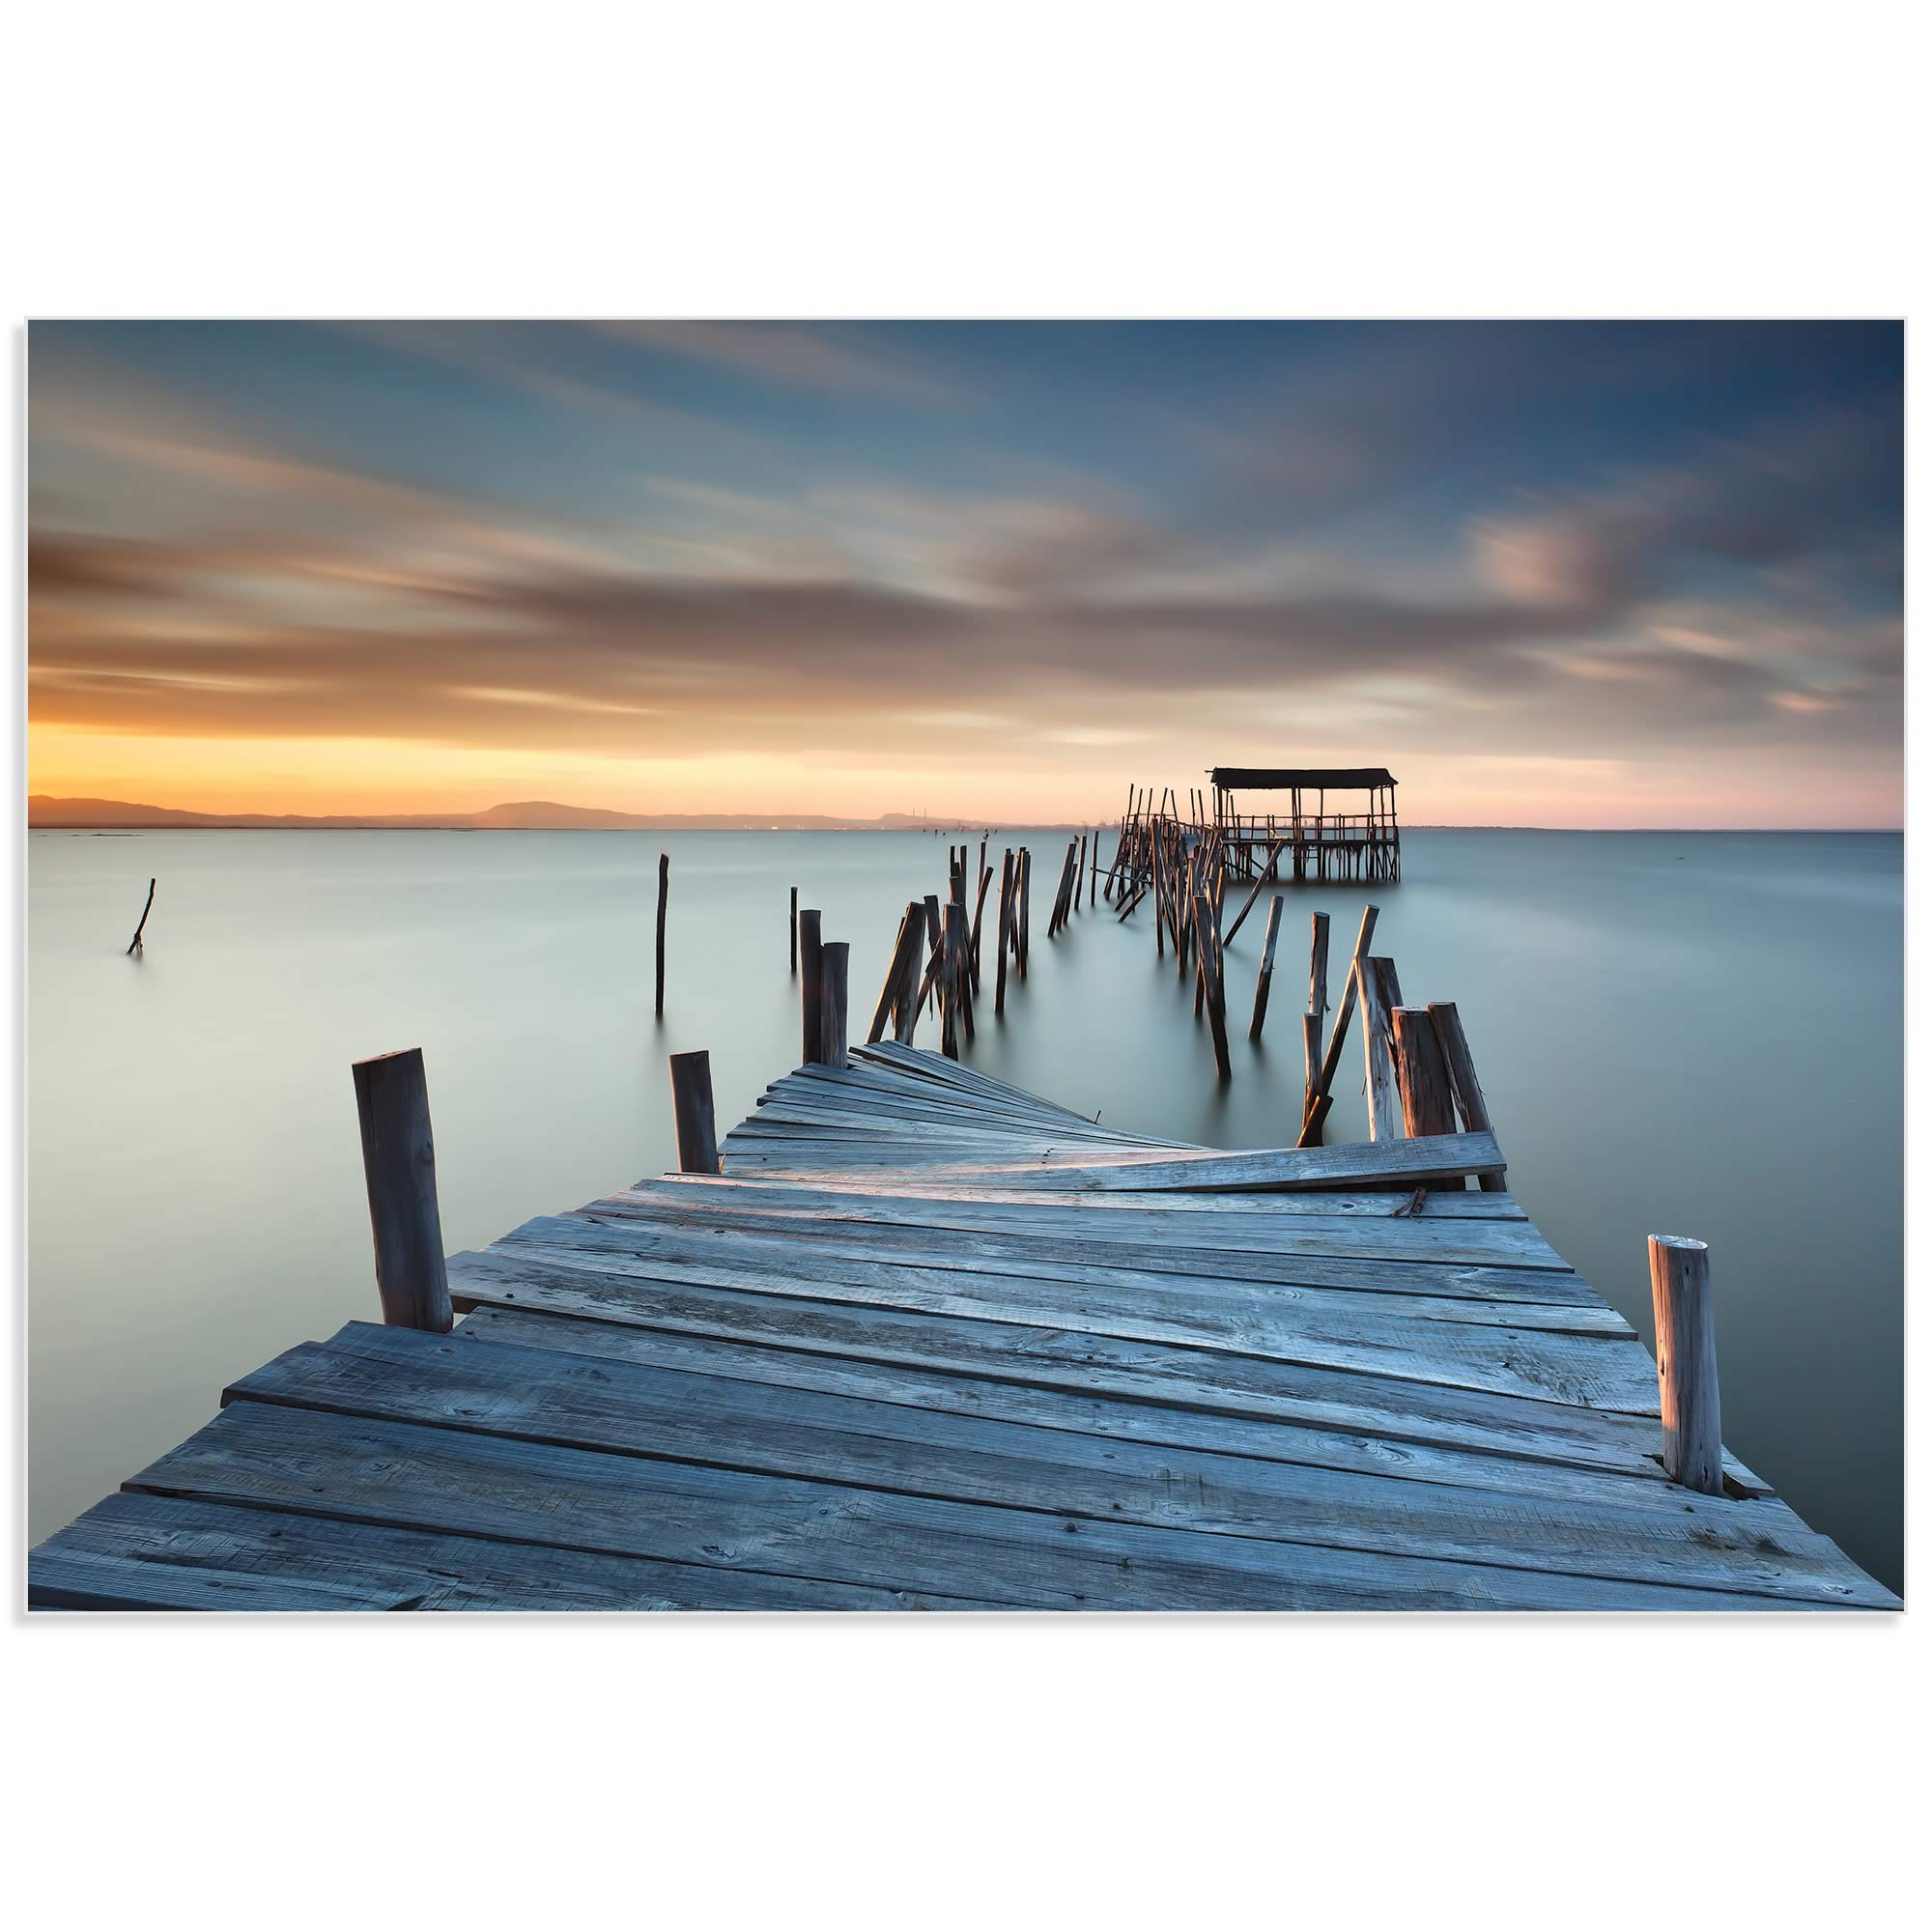 Collapsed Dock by Rui David - Beach Art on Metal or Acrylic - Alternate View 2